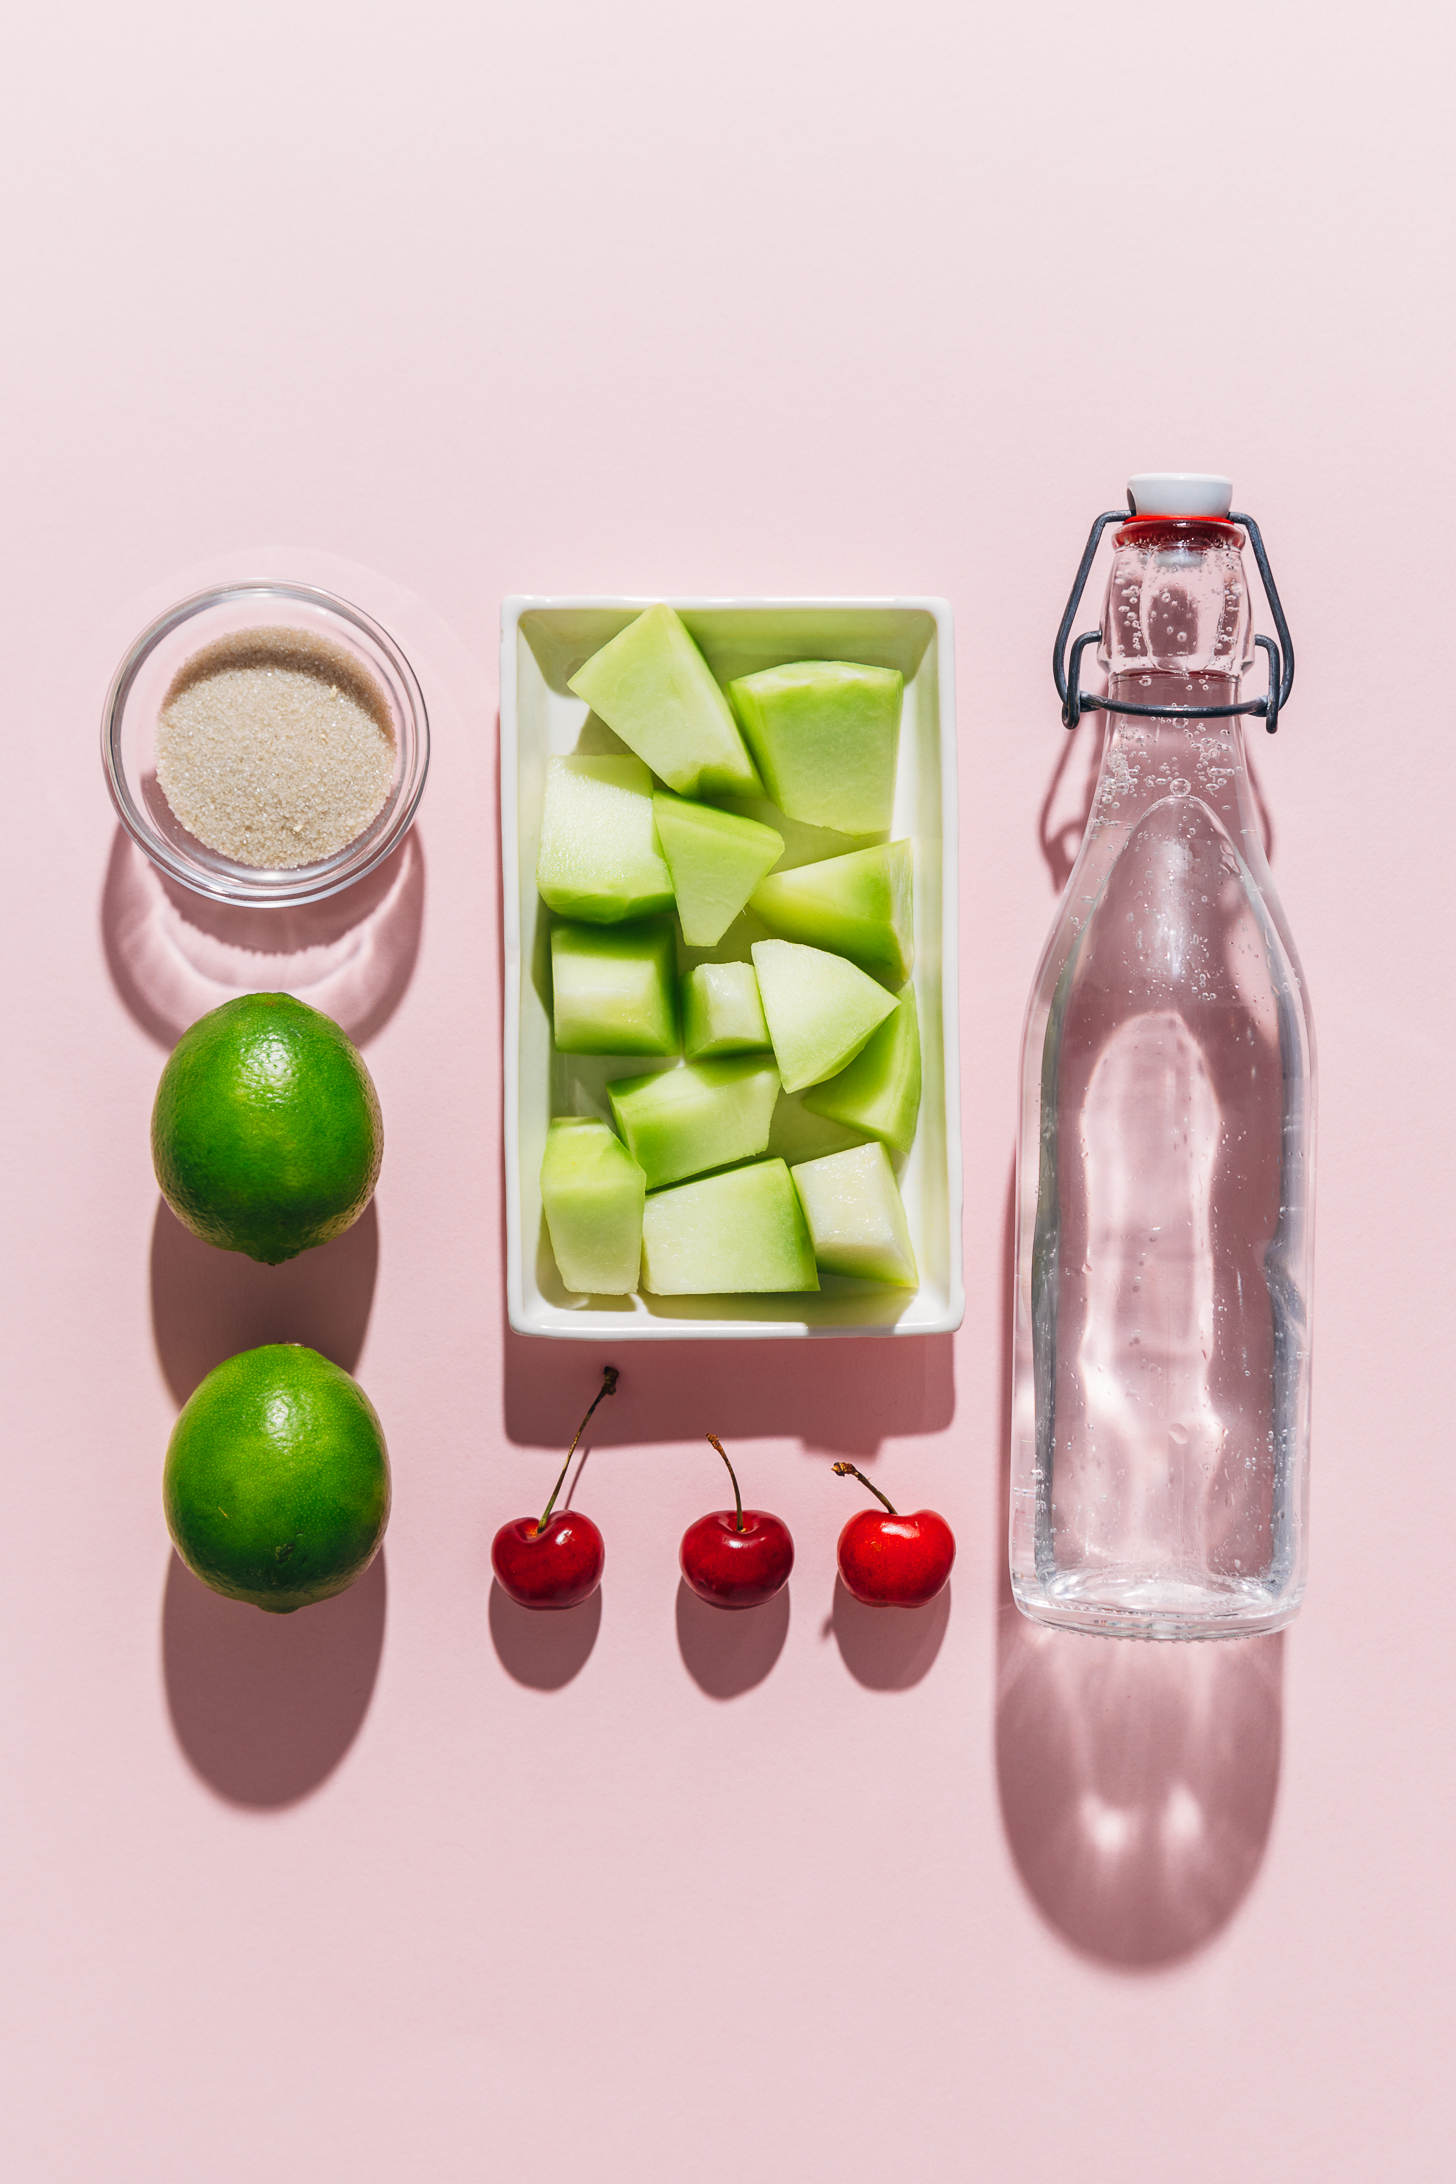 Melon, cherries, lime, and other ingredients for making our virgin Citrus and Melon Spritzer recipe